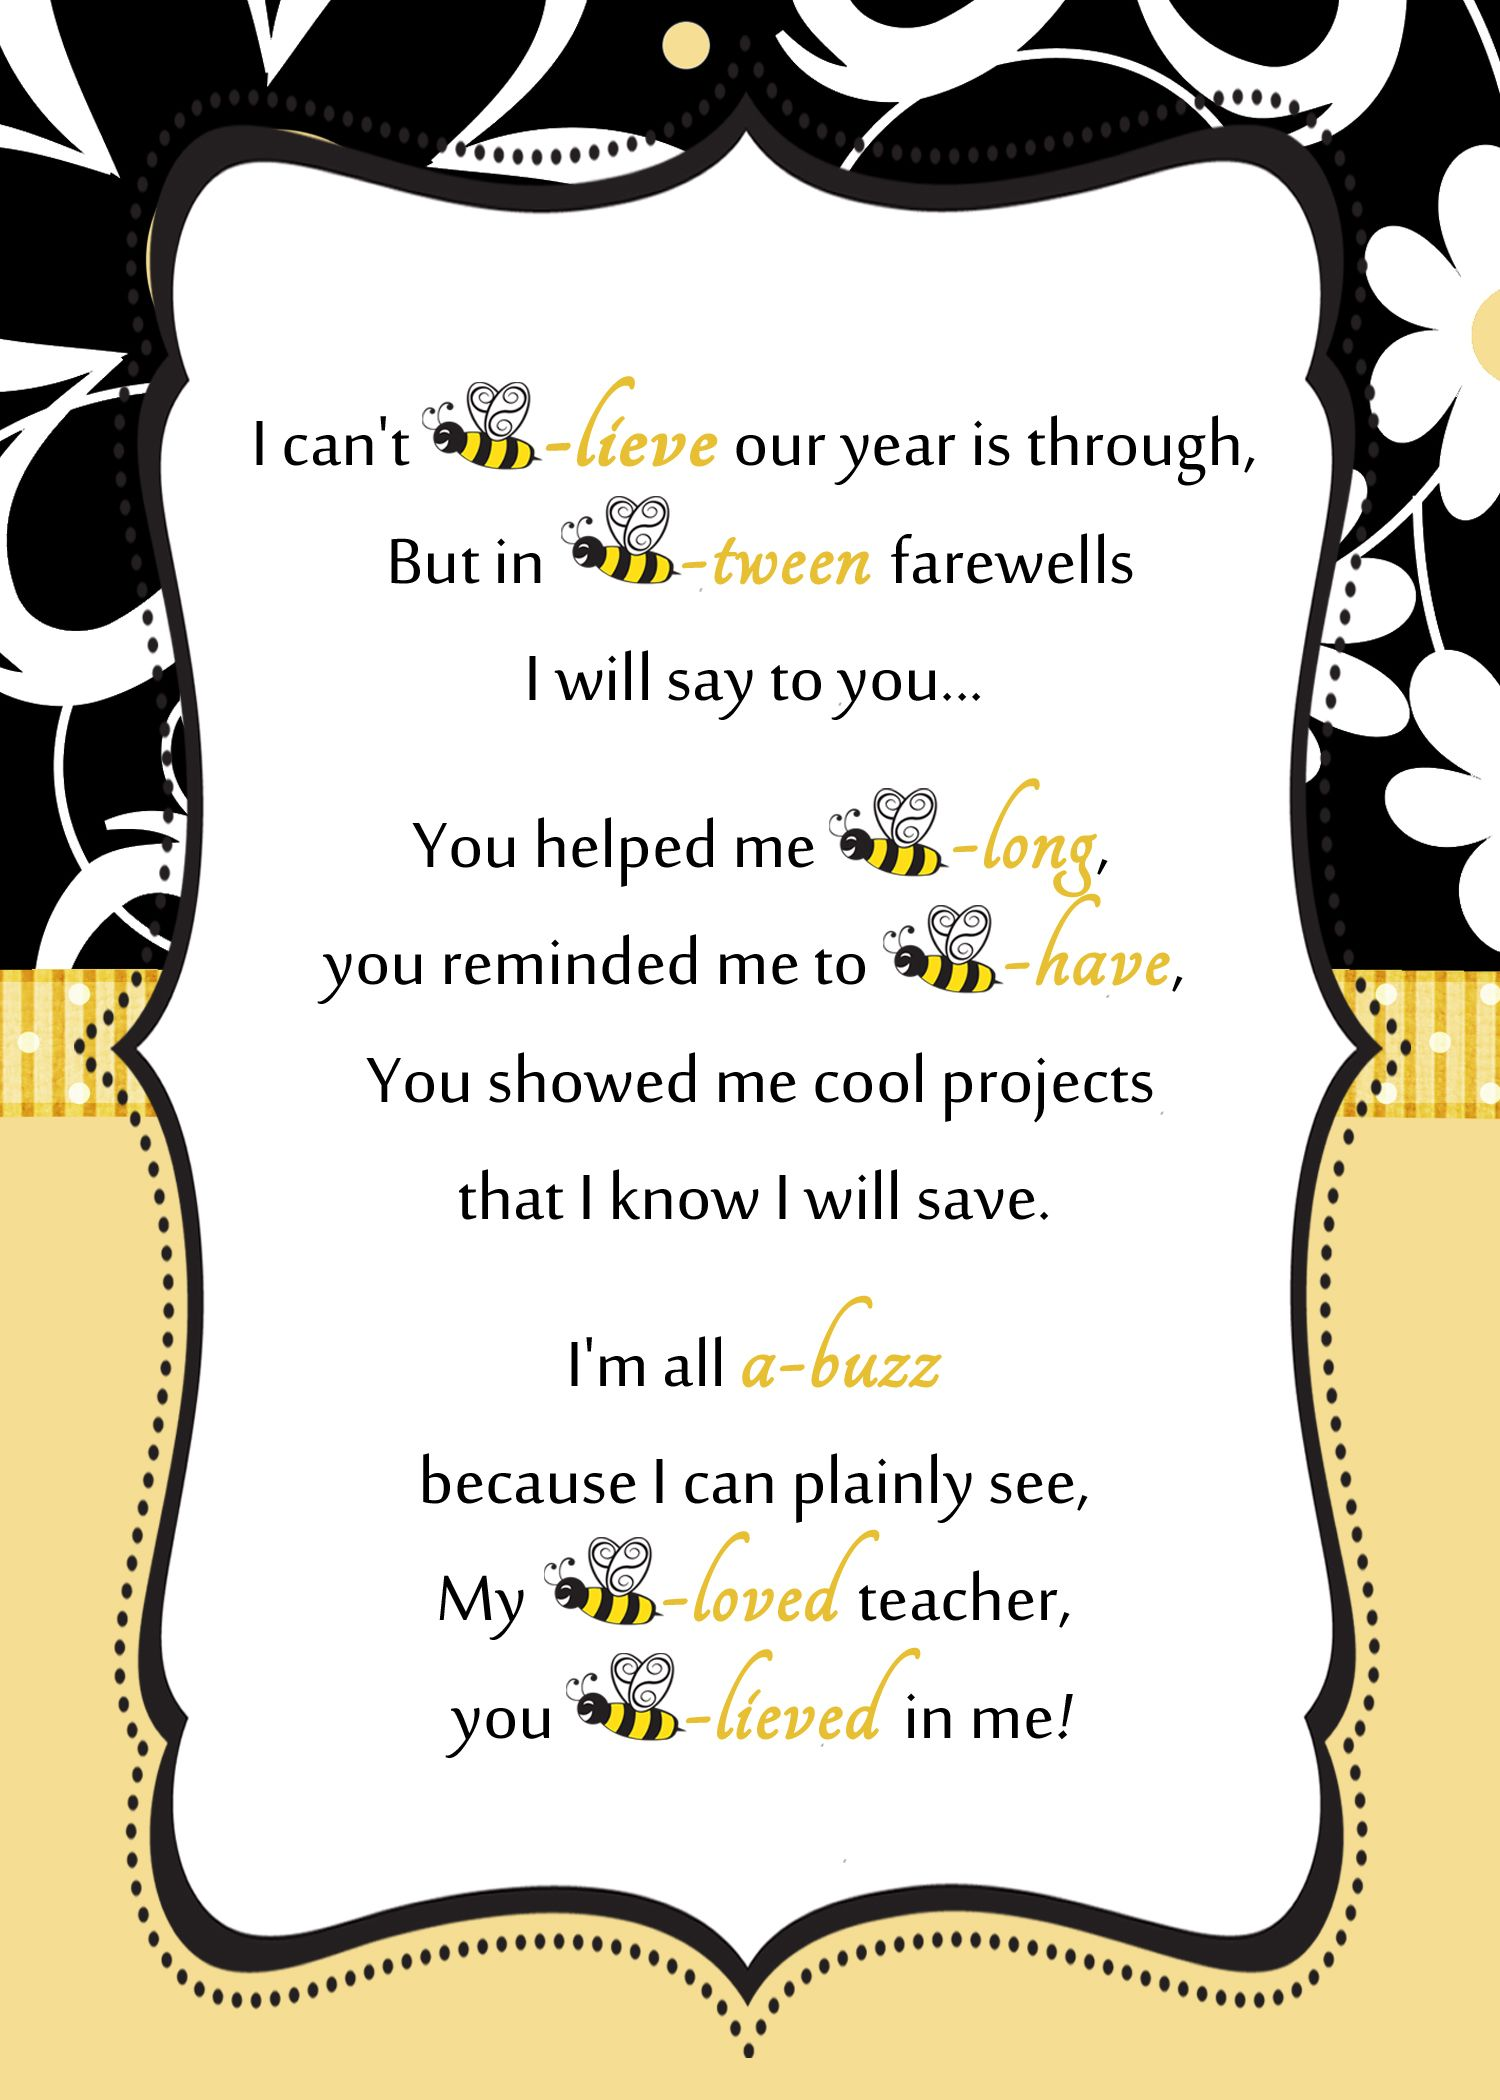 Bee teacher letter by reneessoirees gift ideas pinterest bee teacher letter by reneessoirees thecheapjerseys Image collections